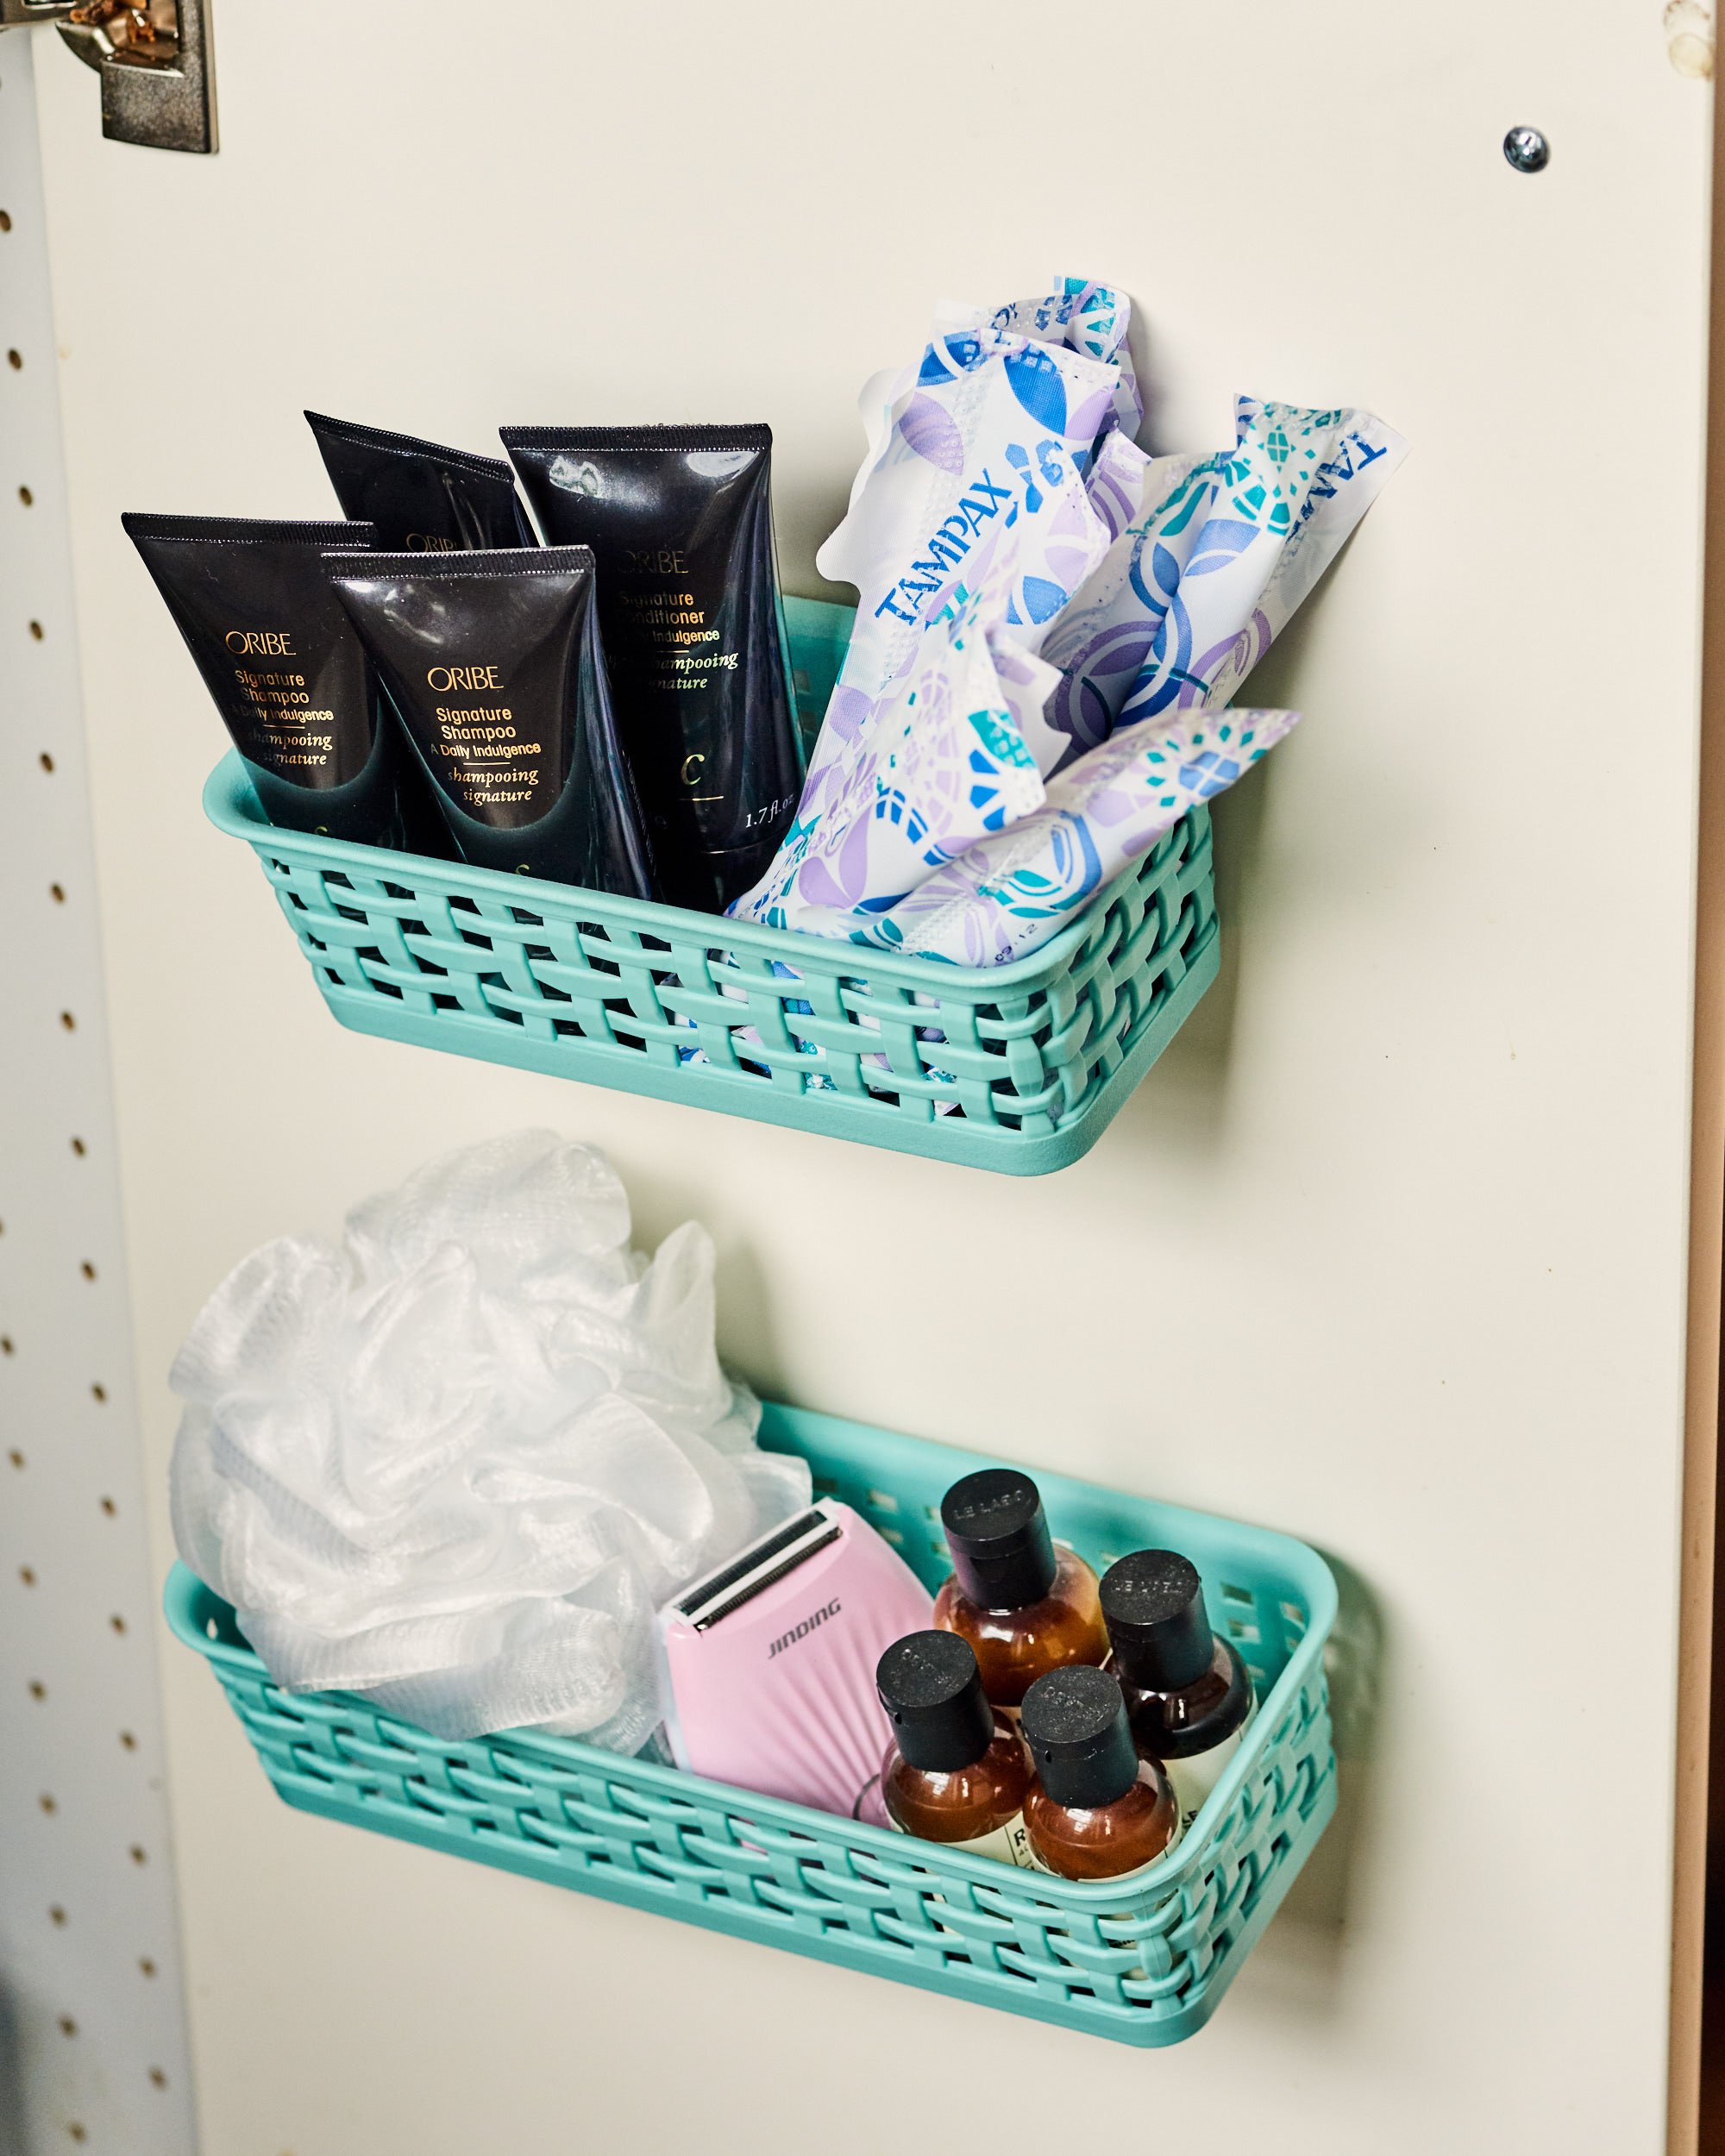 The 12 Best Dollar Store Organizing Ideas Apartment Therapy,2 Bedroom Apartments For Rent Edmonton West